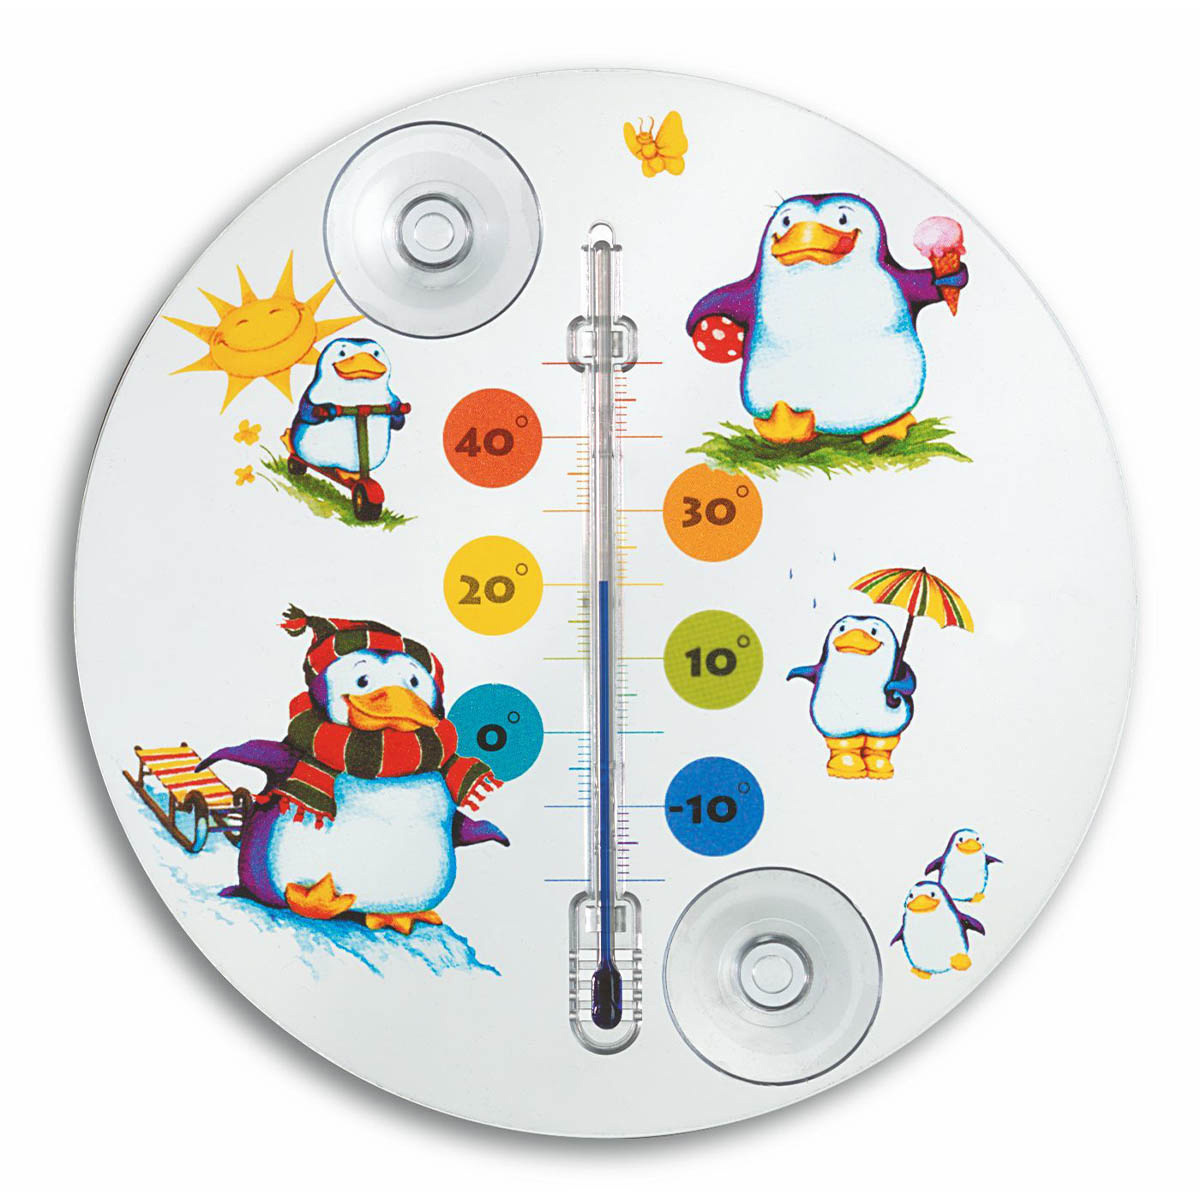 14-6016-20-analoges-fensterthermometer-pinguin-1200x1200px.jpg